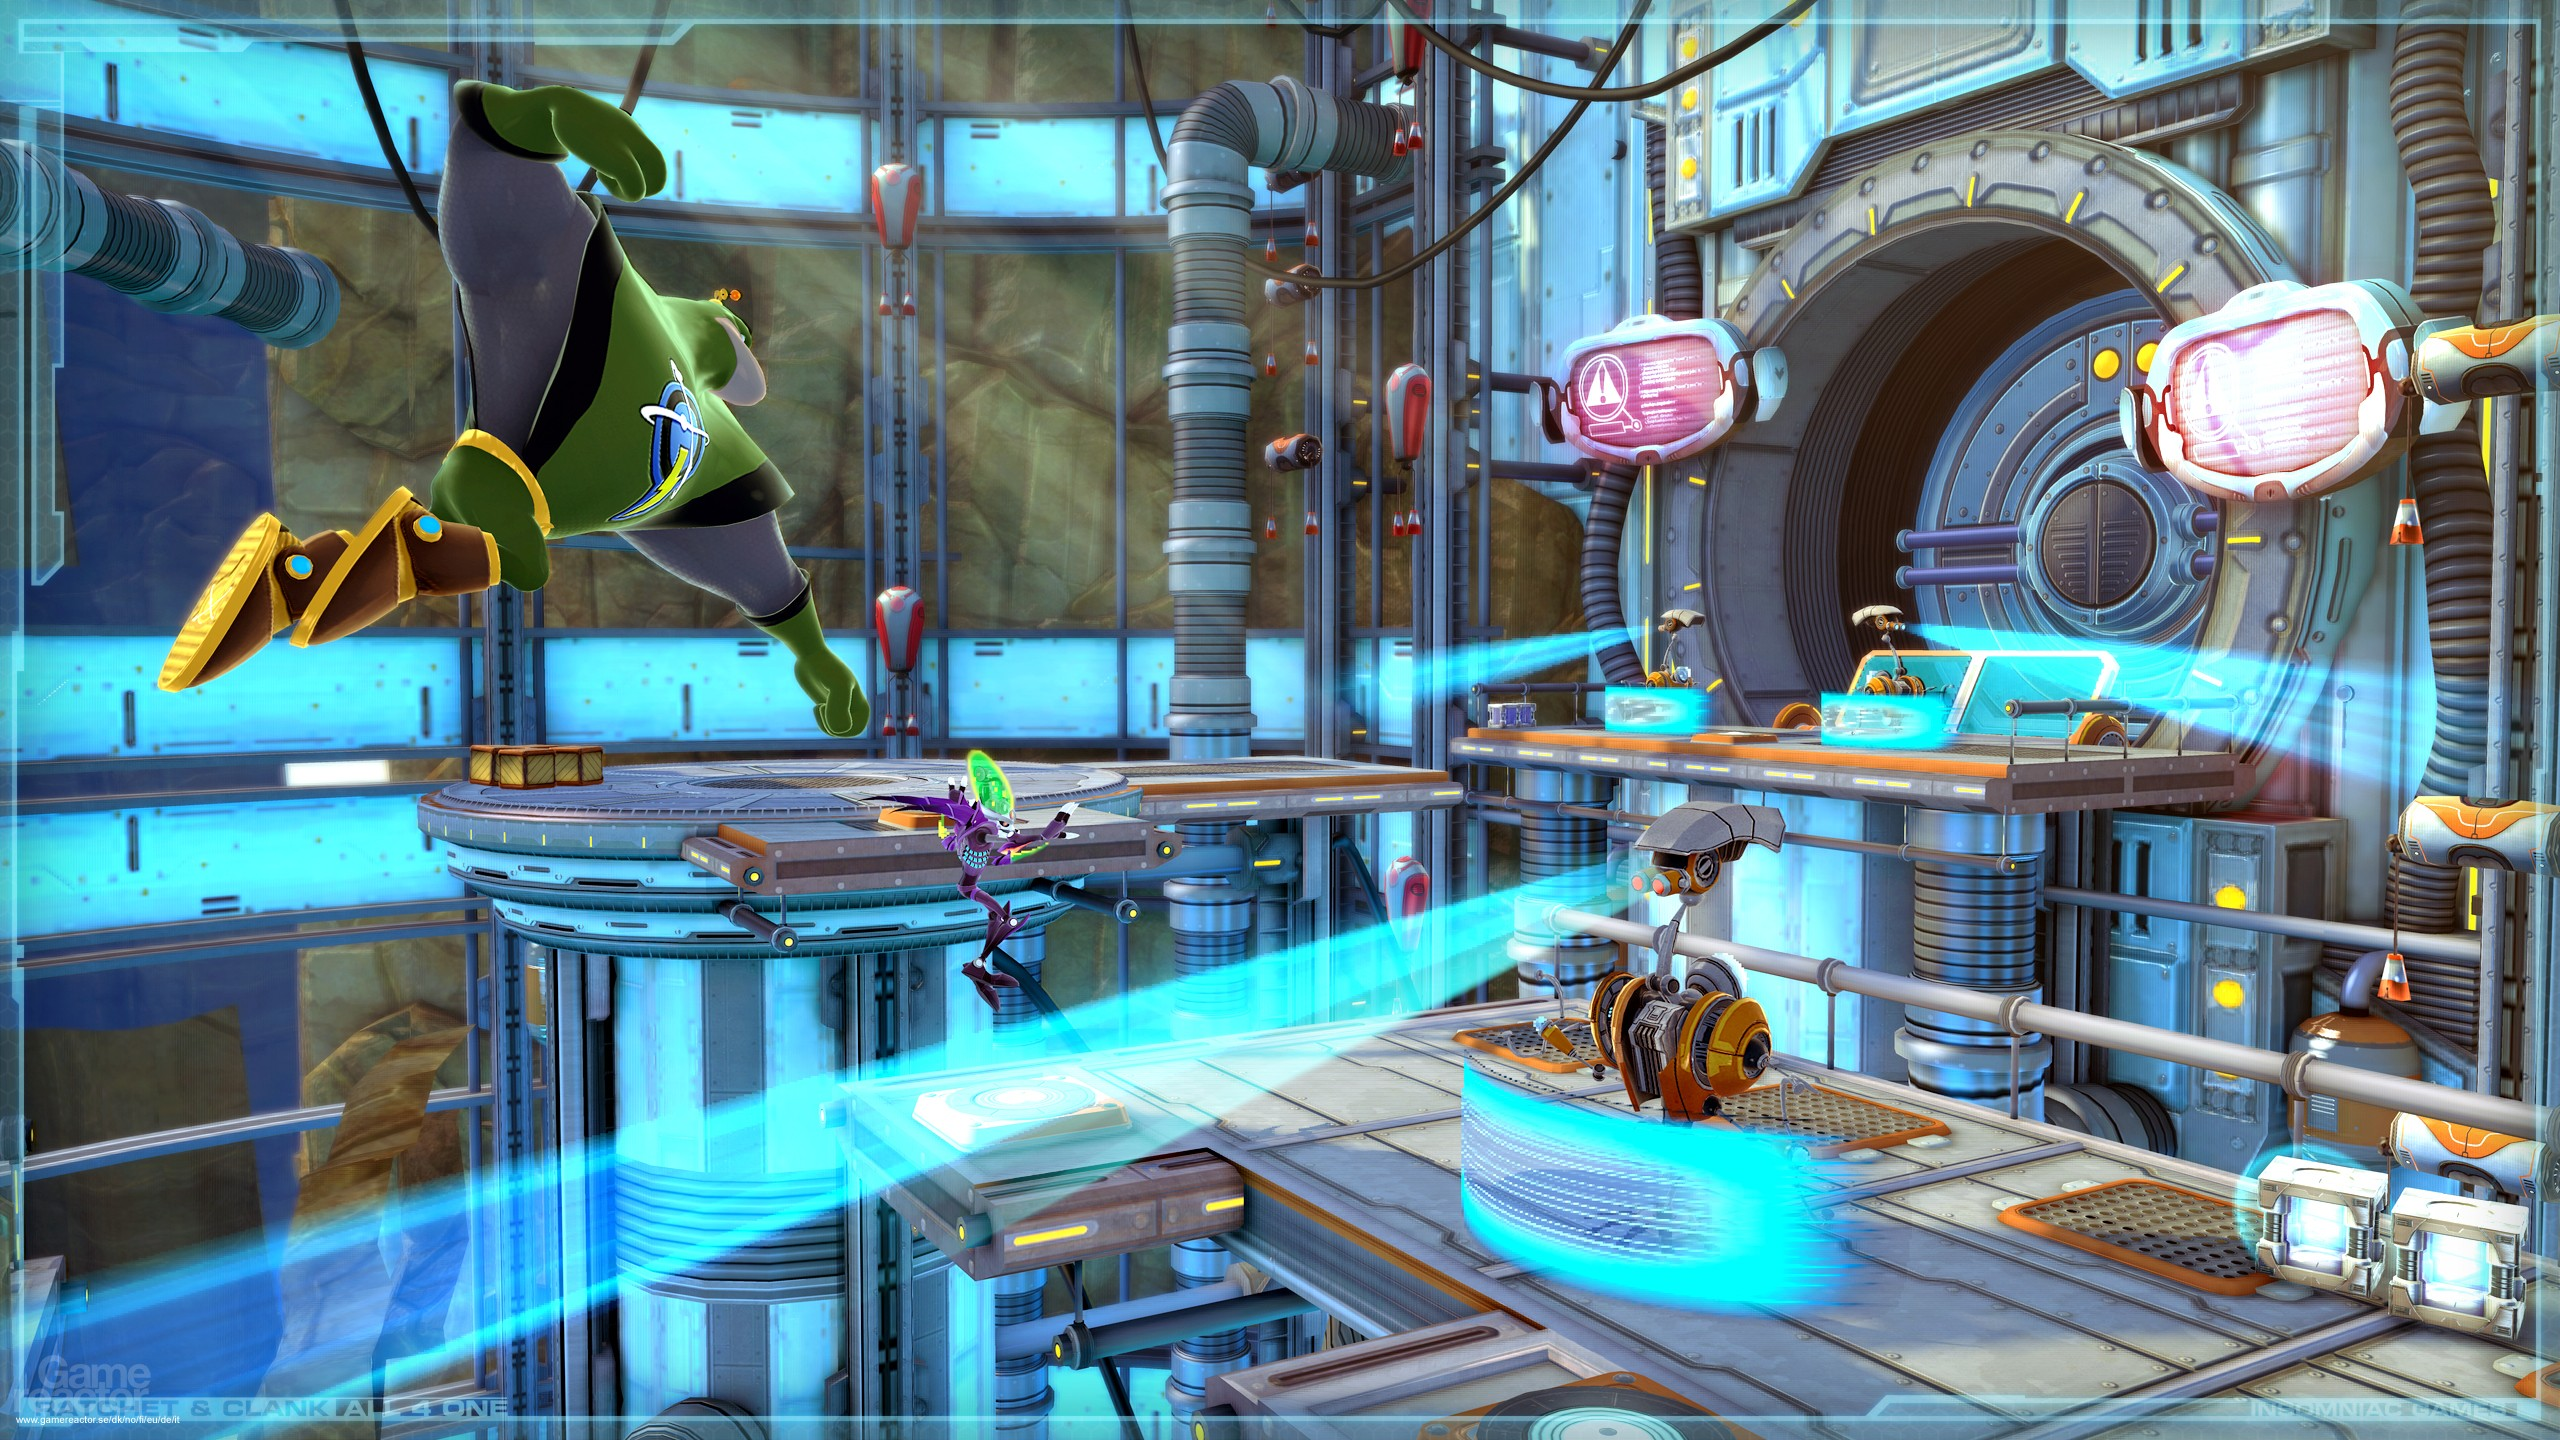 Pictures Of Ratchet Clank All 4 One 1 5